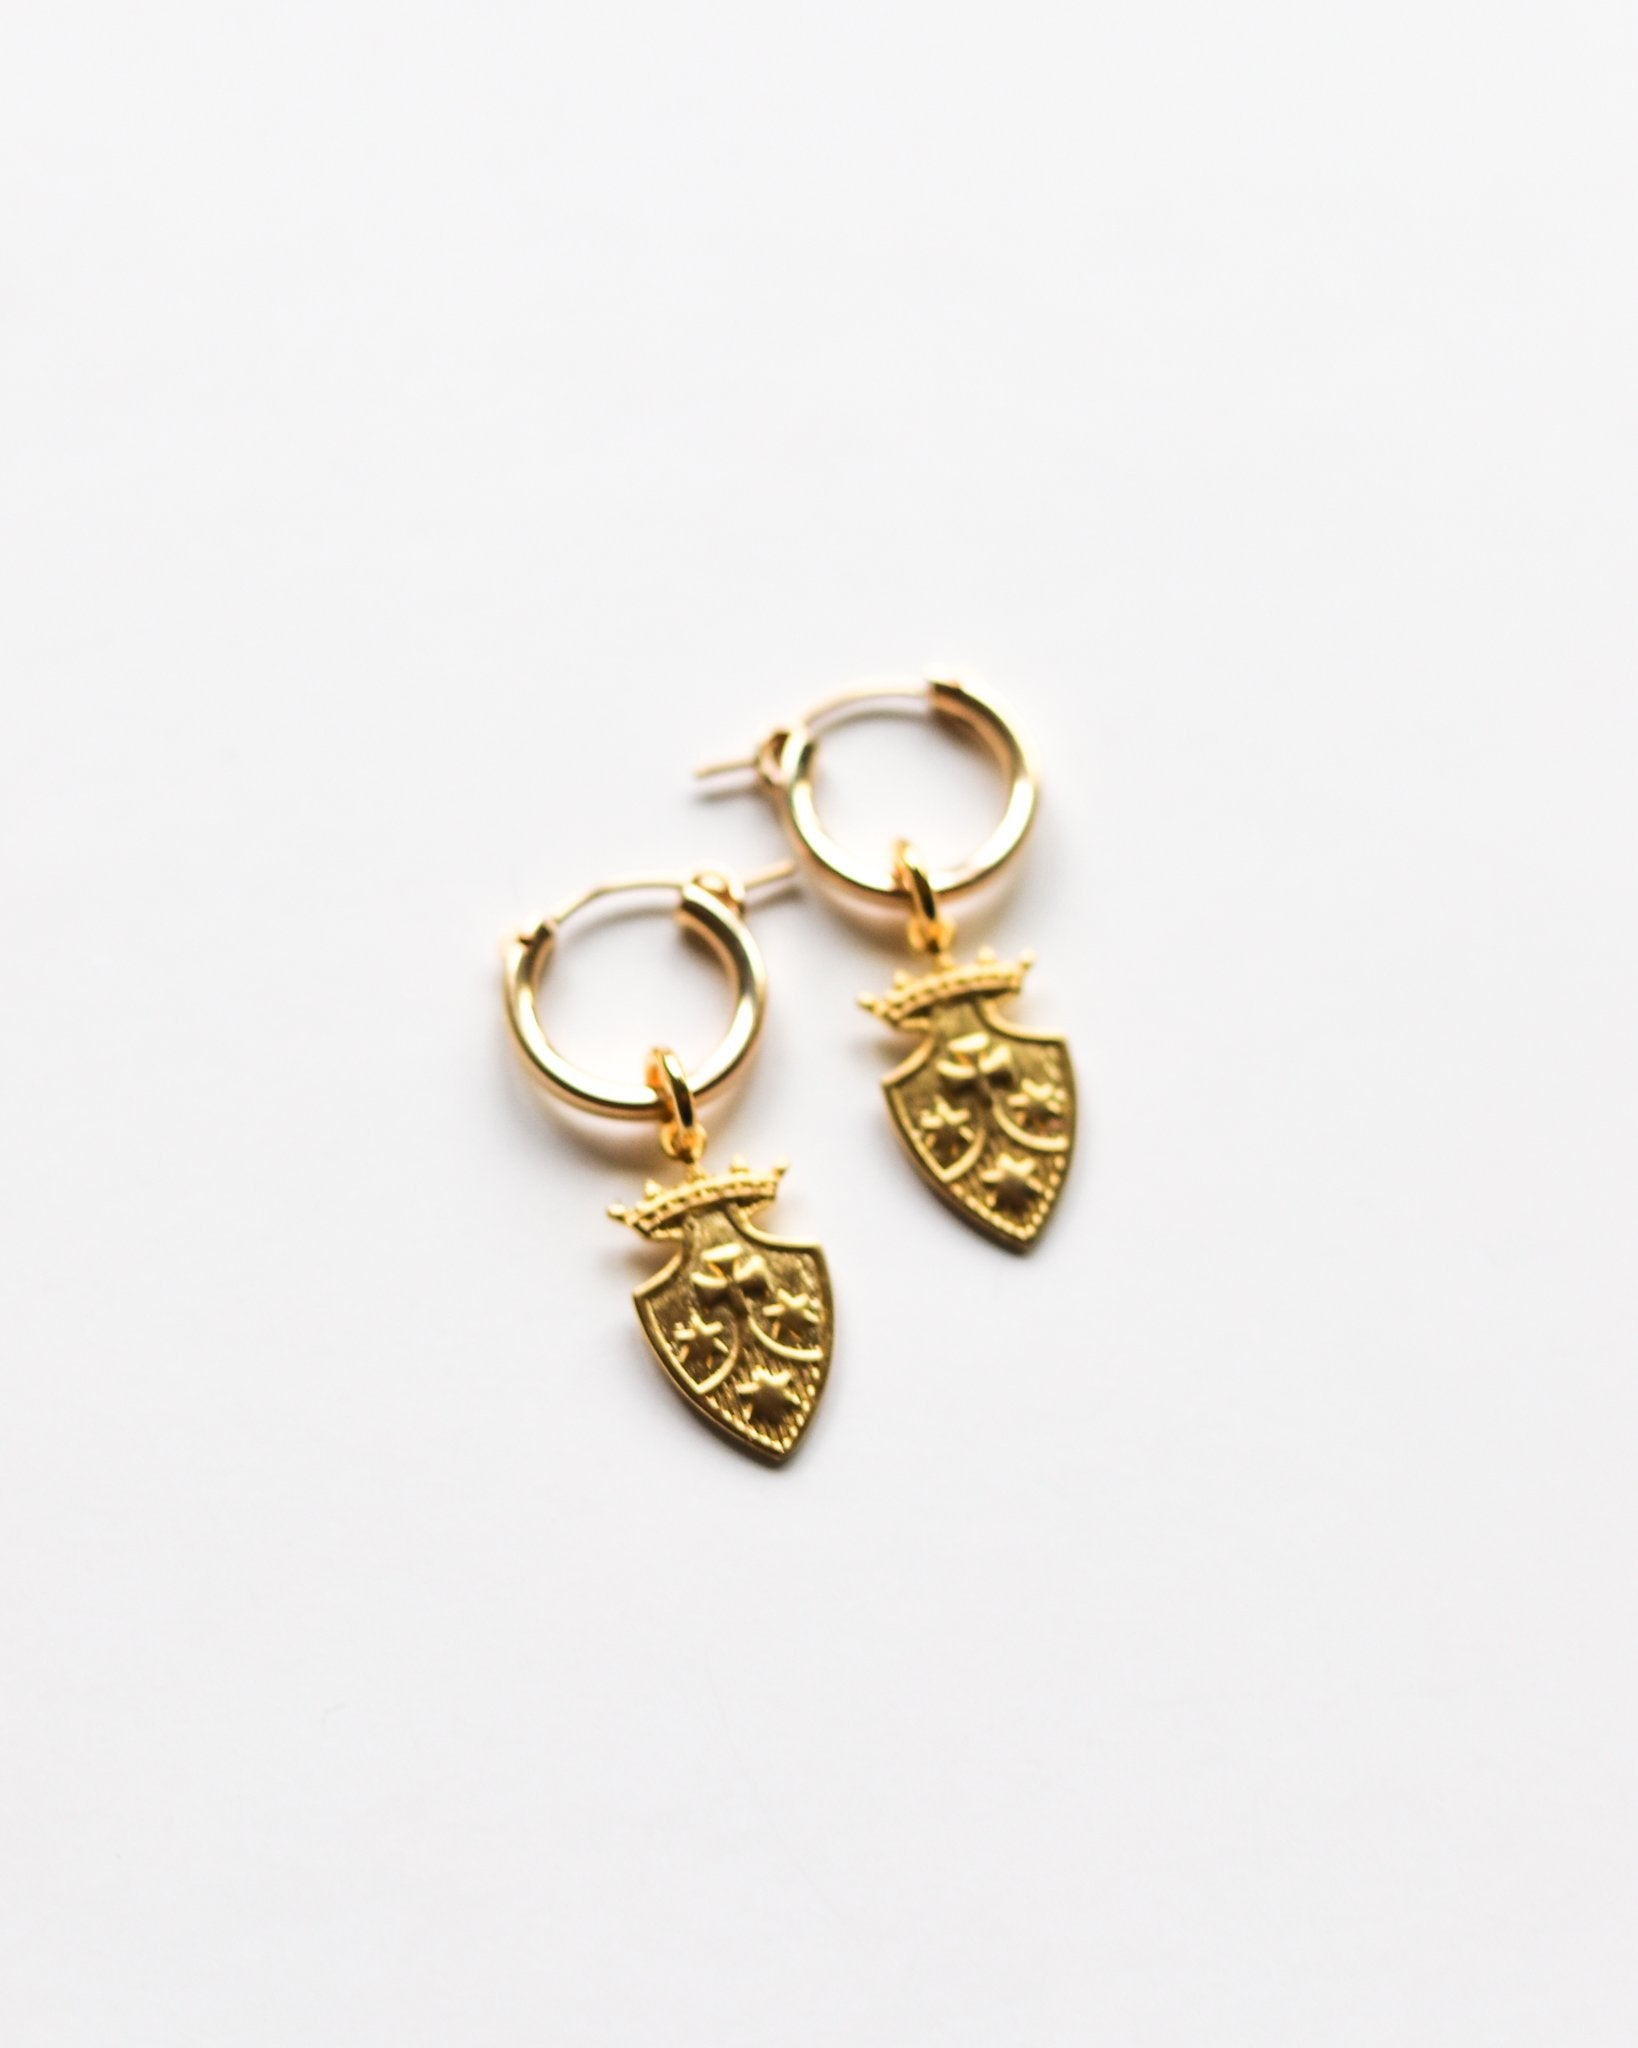 14K Gold Charm Hoop Earrings - Zip & Mos